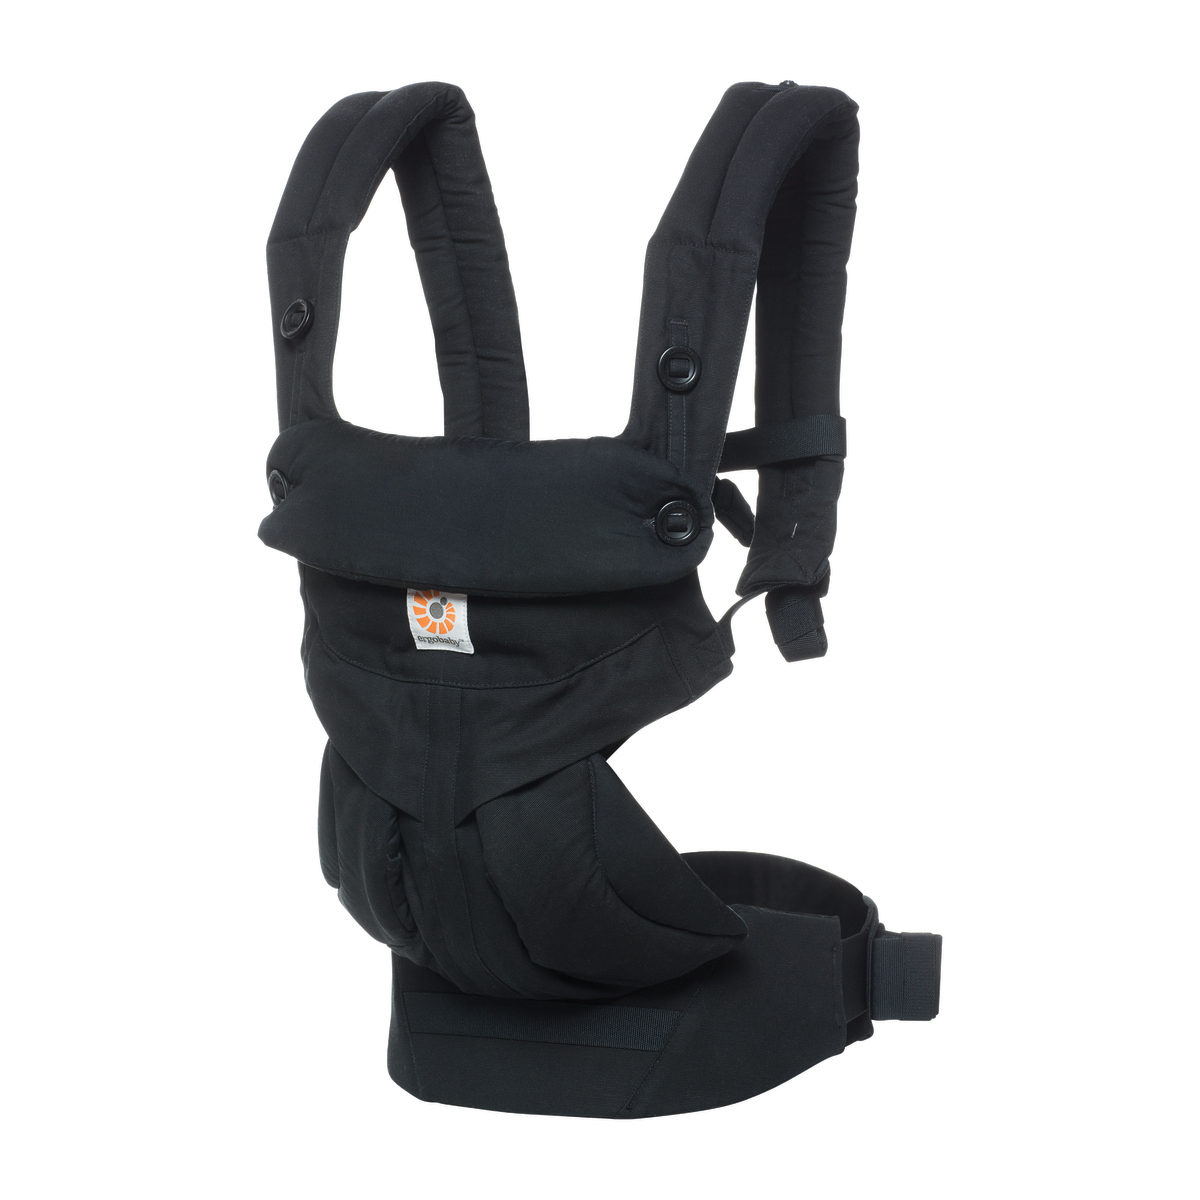 Ergobaby 360 All Positions Carrier in Pure Black